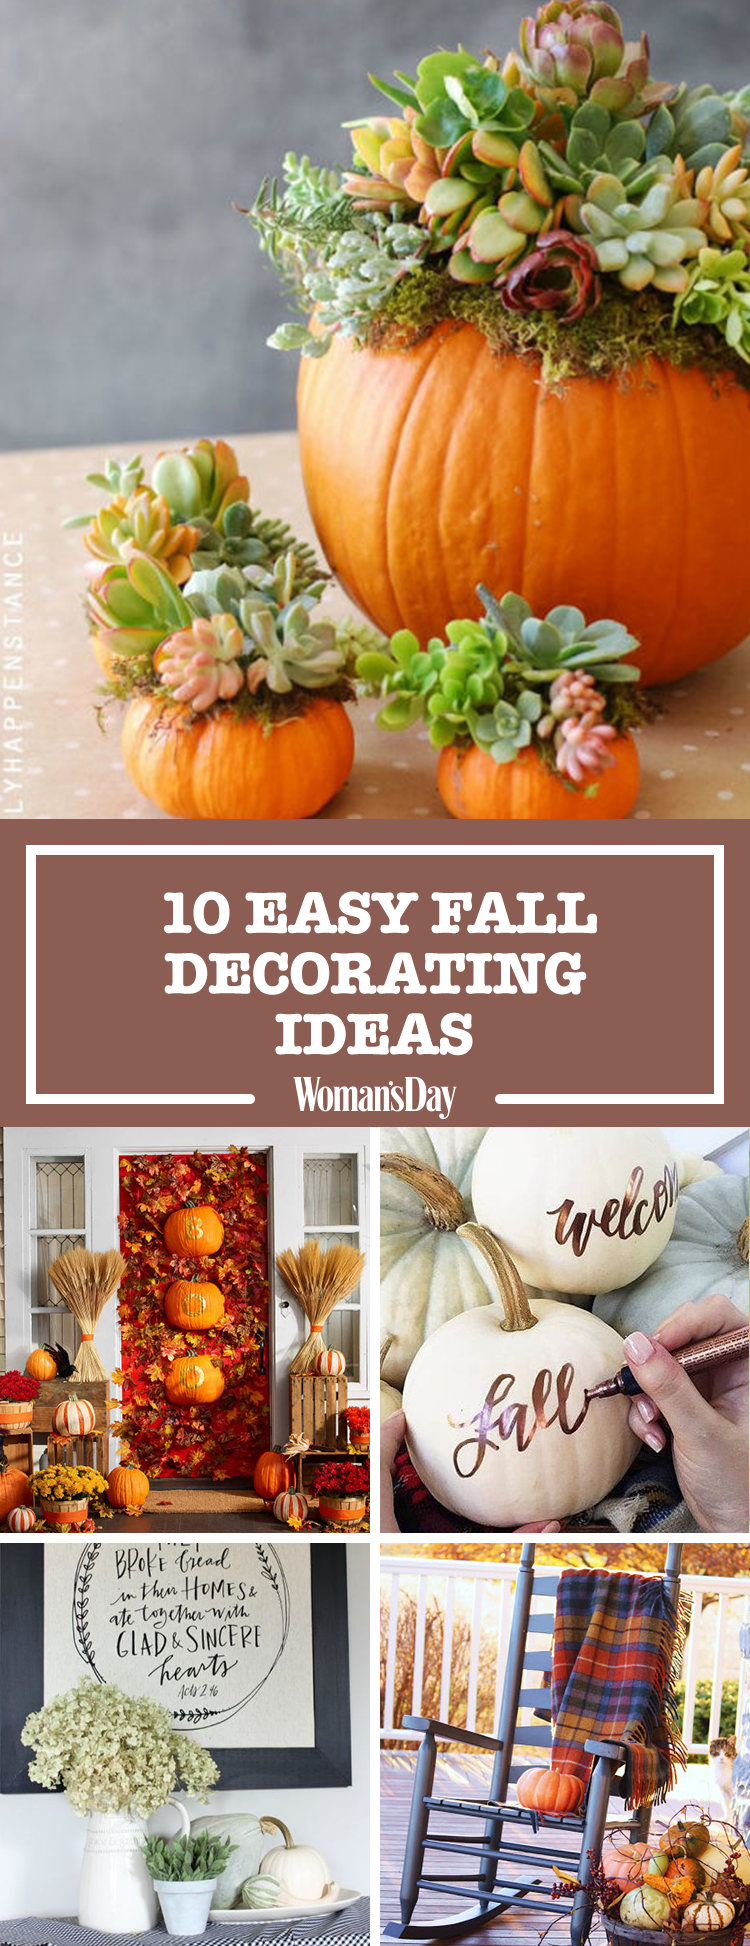 12 easy fall decorating ideas best autumn decor tips - Fall Decorating